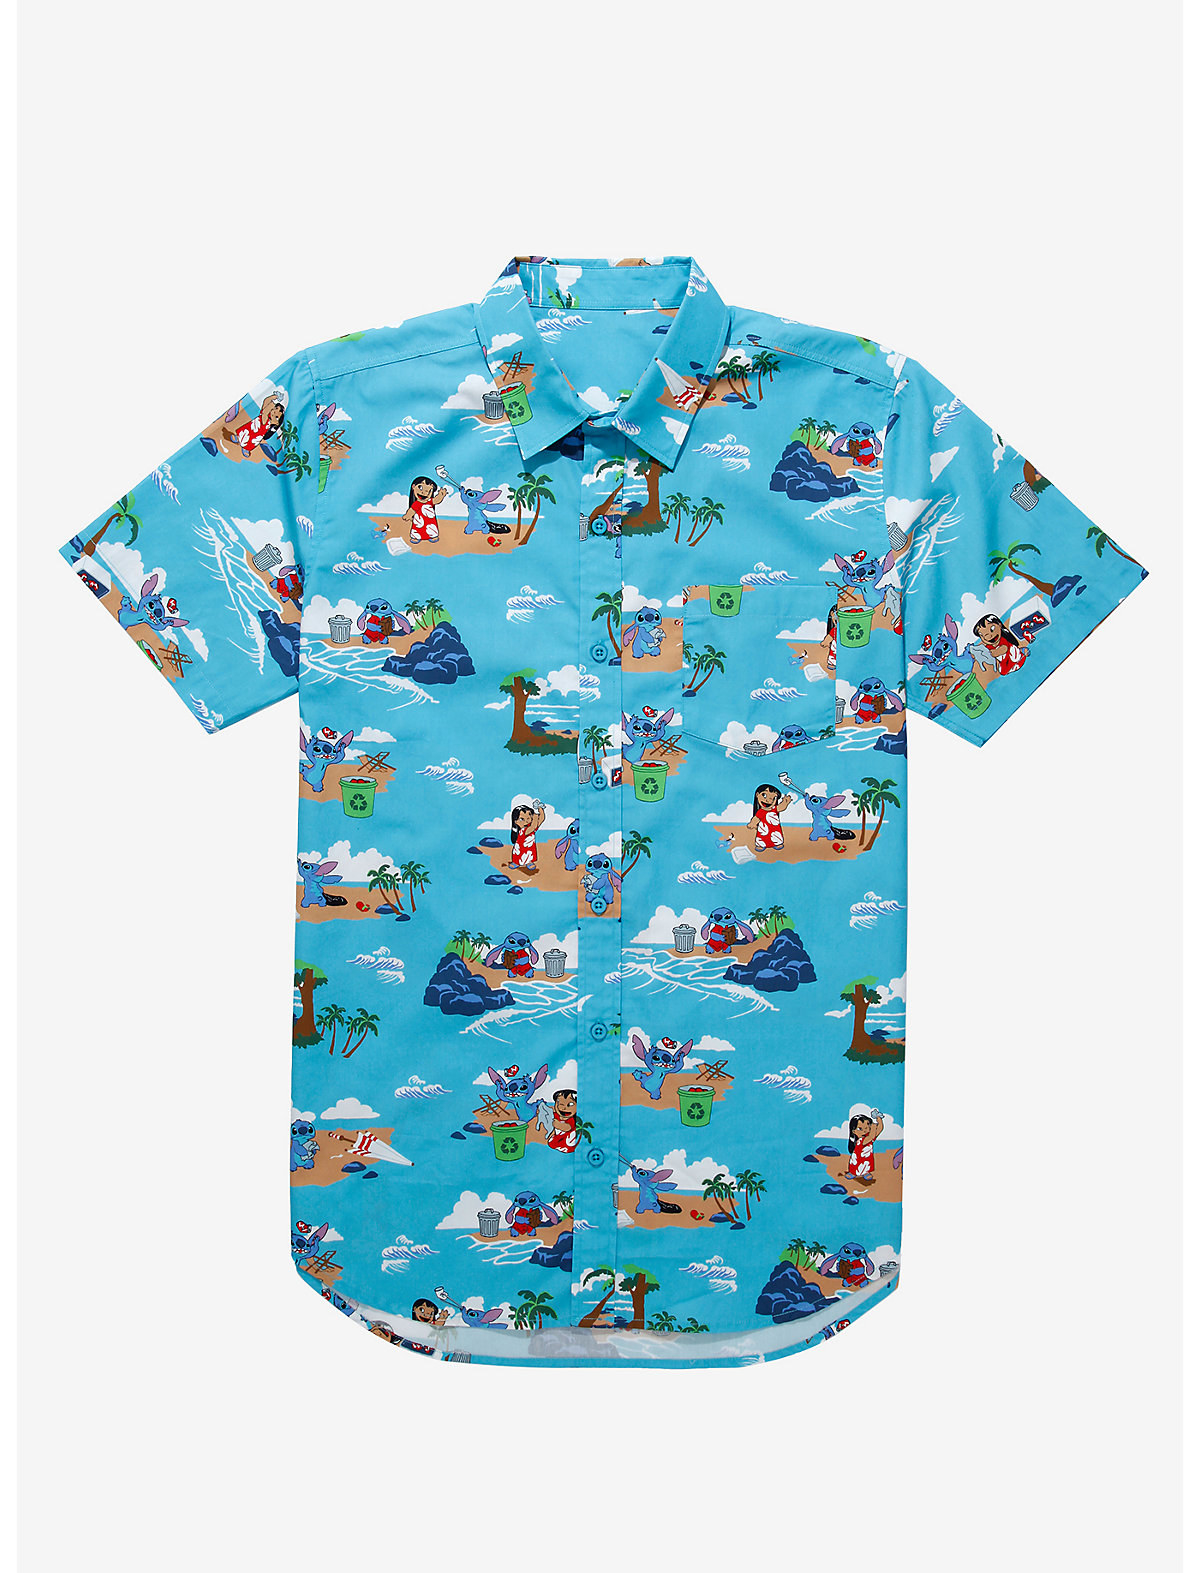 a hawaiian button down shirt with lilo and stitch all over it at the beach